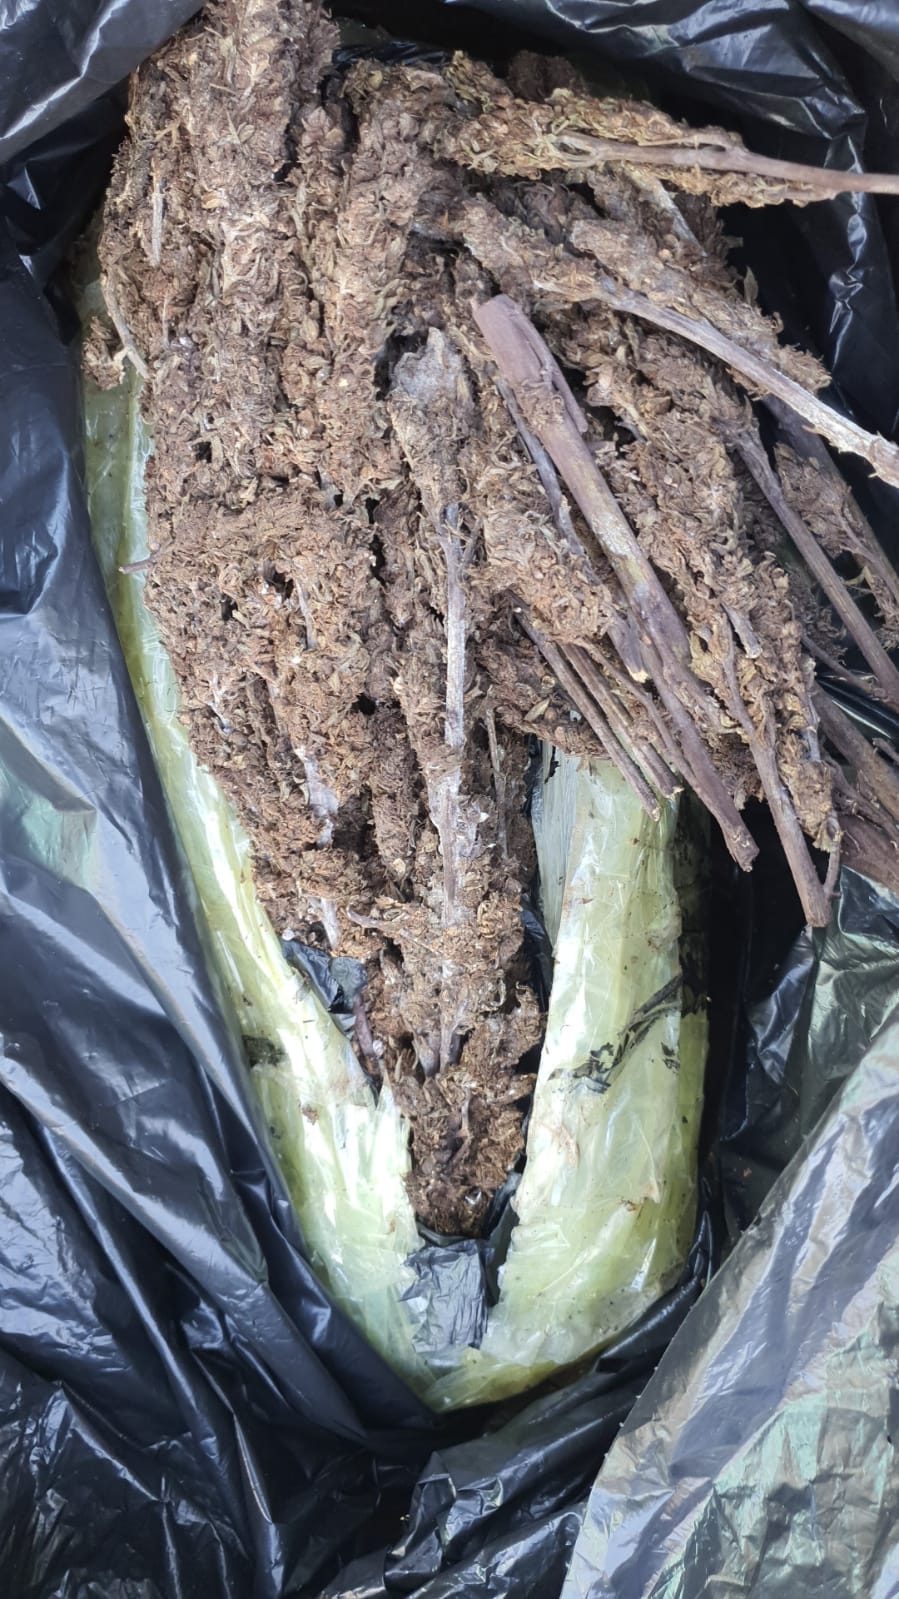 Bags of suspected ganja were recovered during the search.